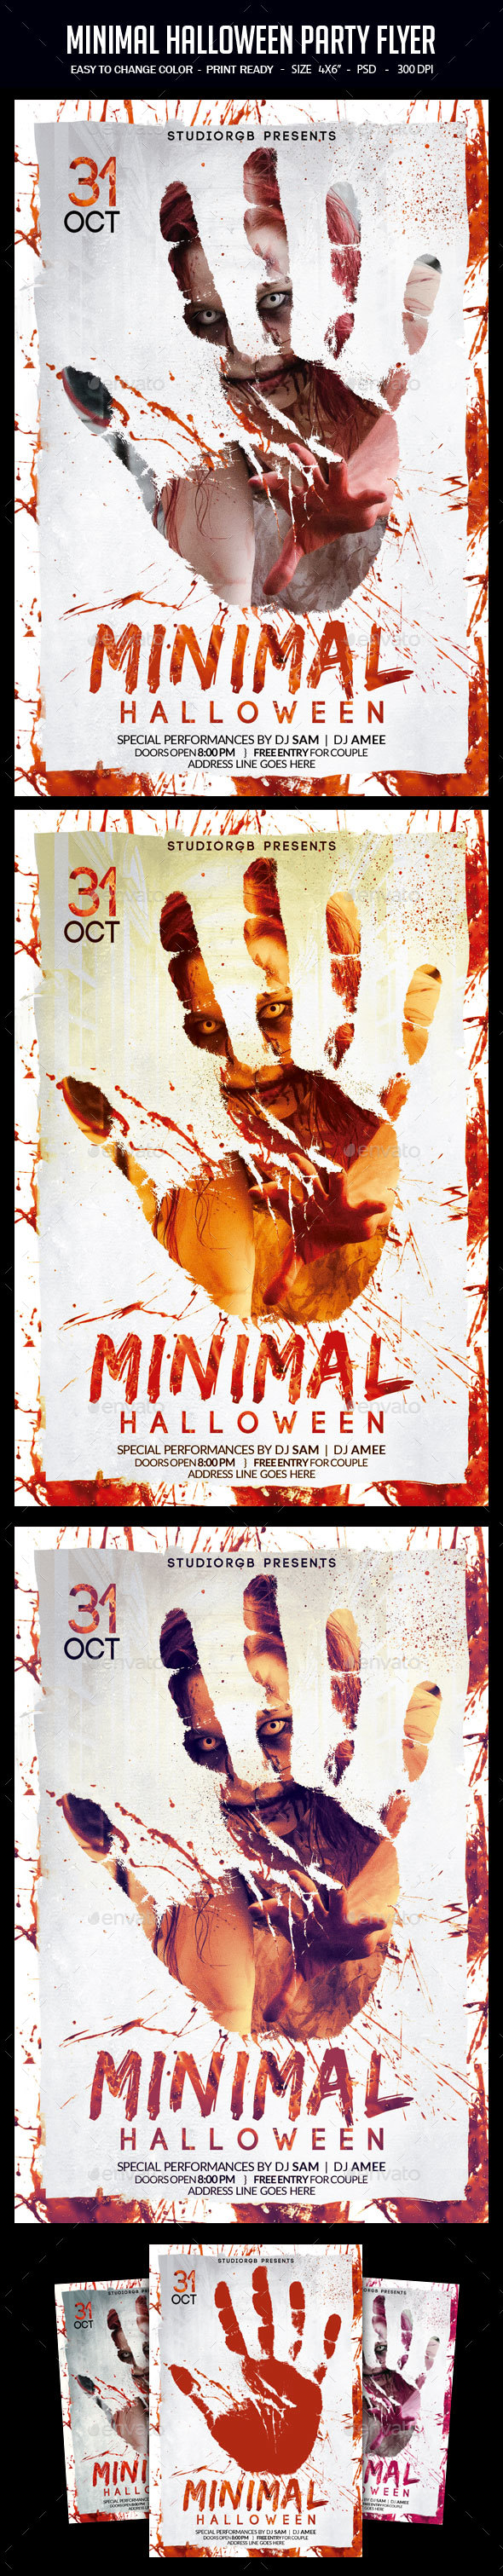 Minimal Halloween Party Flyer